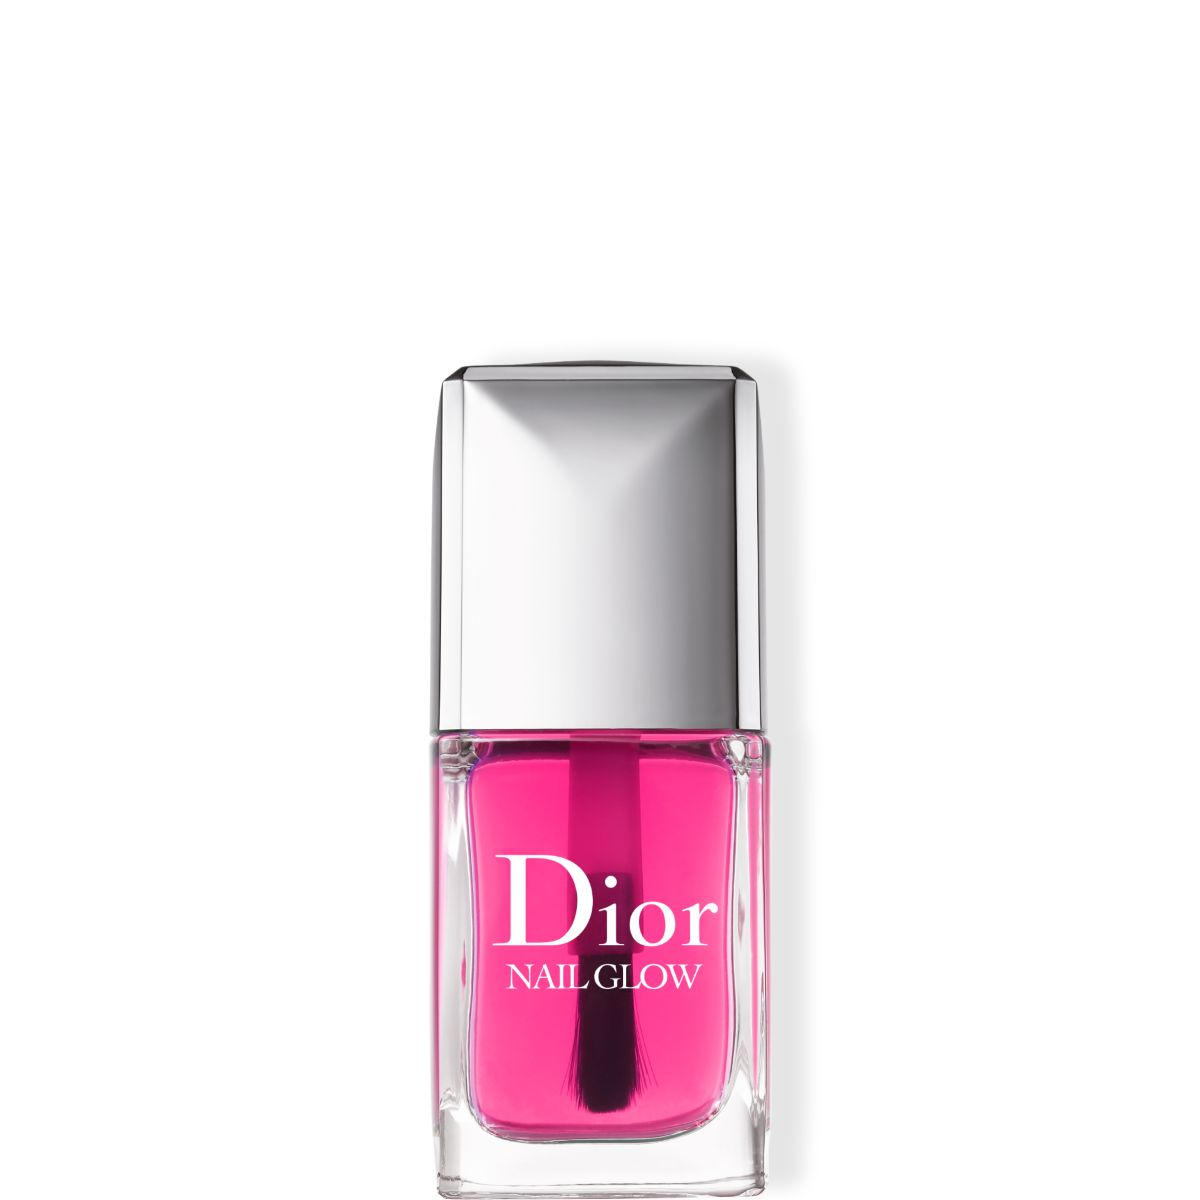 Dior - Nail Glow - Effet French Manucure Instantanée, soin éclaircissant